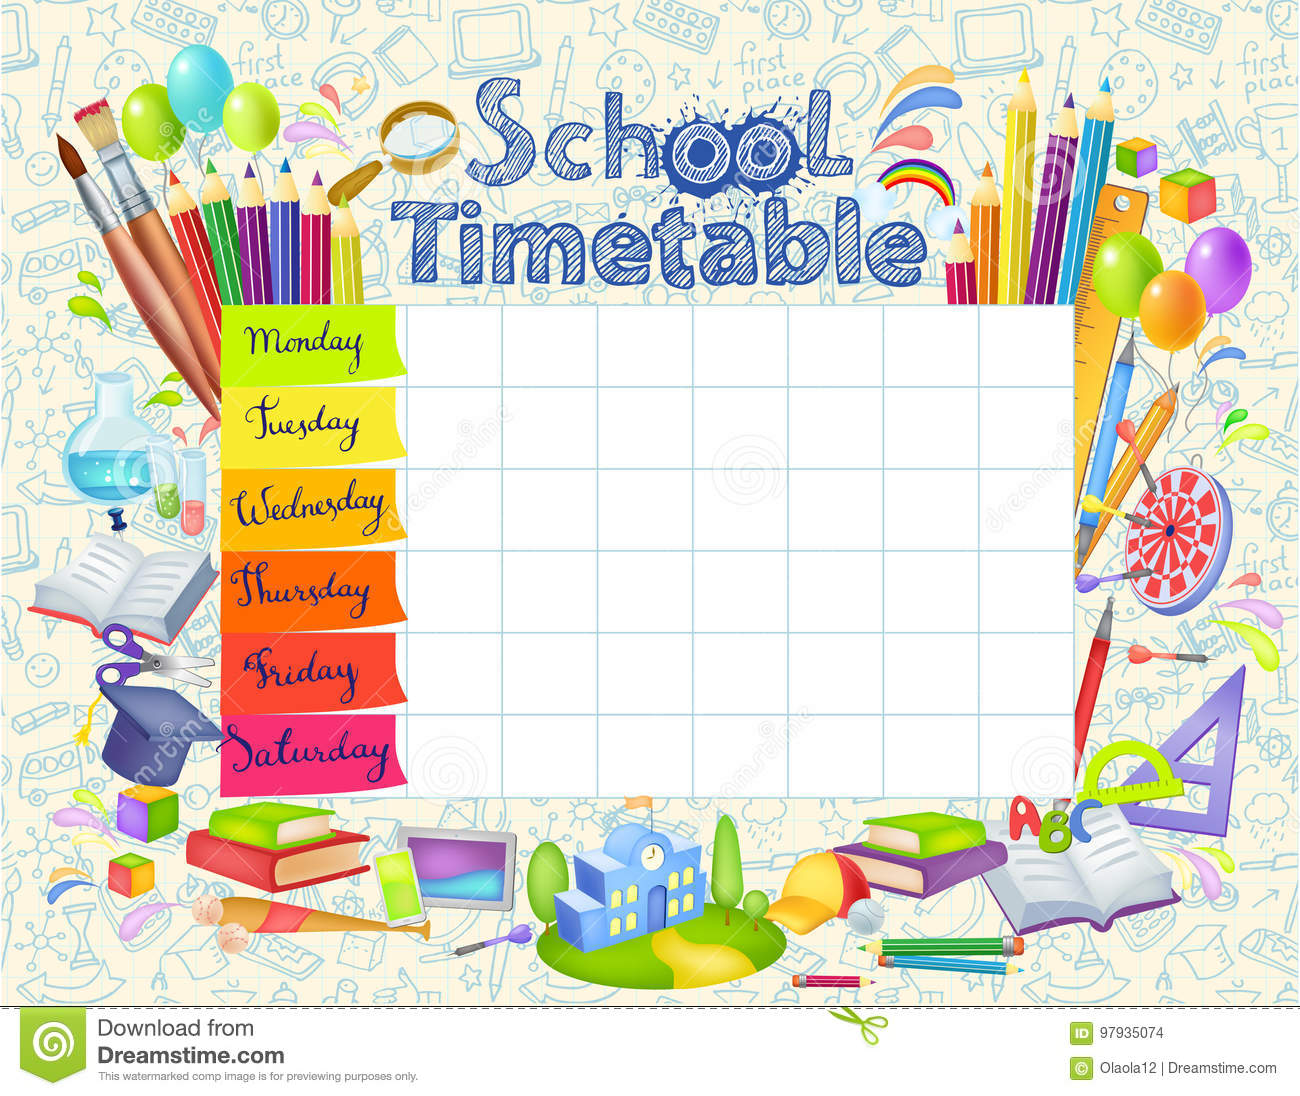 Quotes On School Time Table: Template School Timetable Stock Vector. Illustration Of